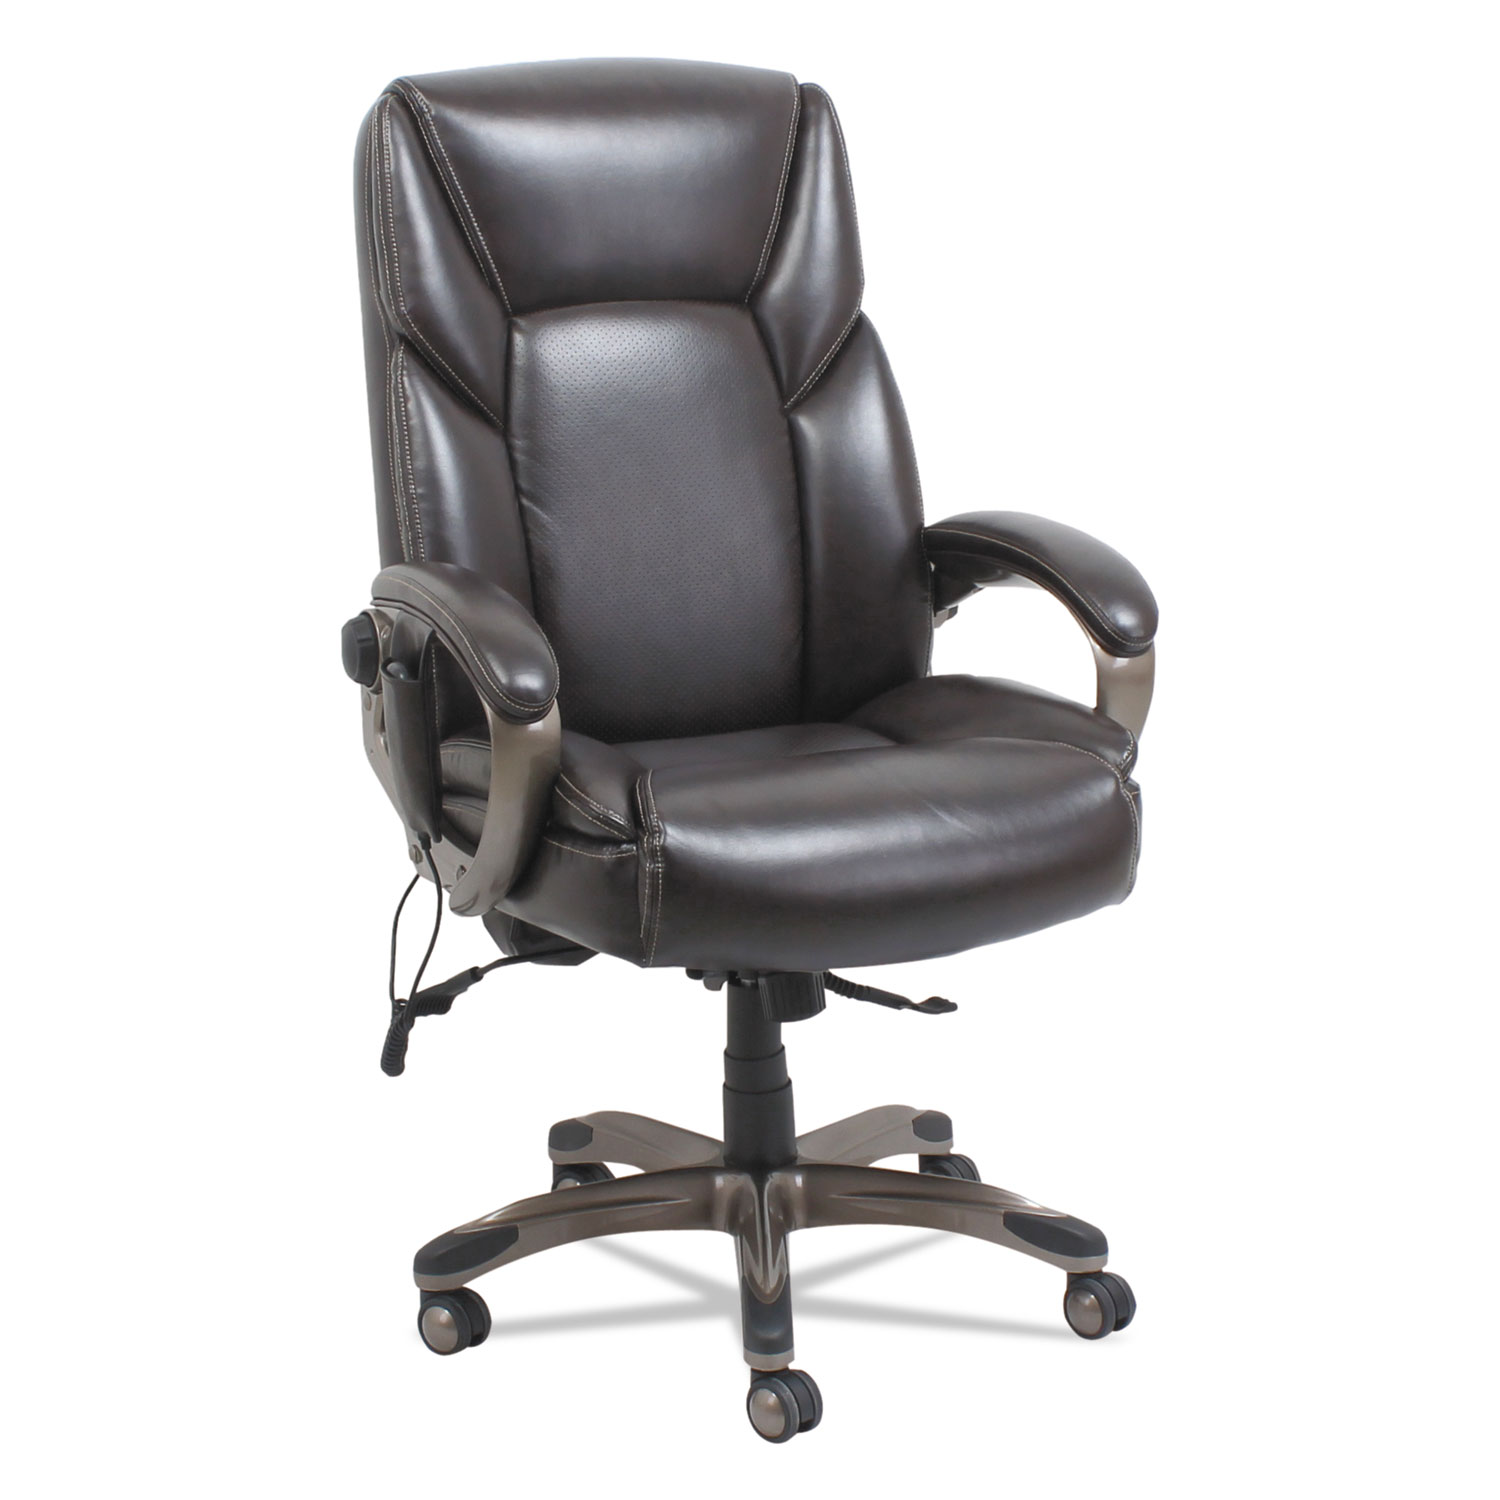 Massage Office Chair Shiatsu Heated Massage Chair Chocolate Marble Bronze Base